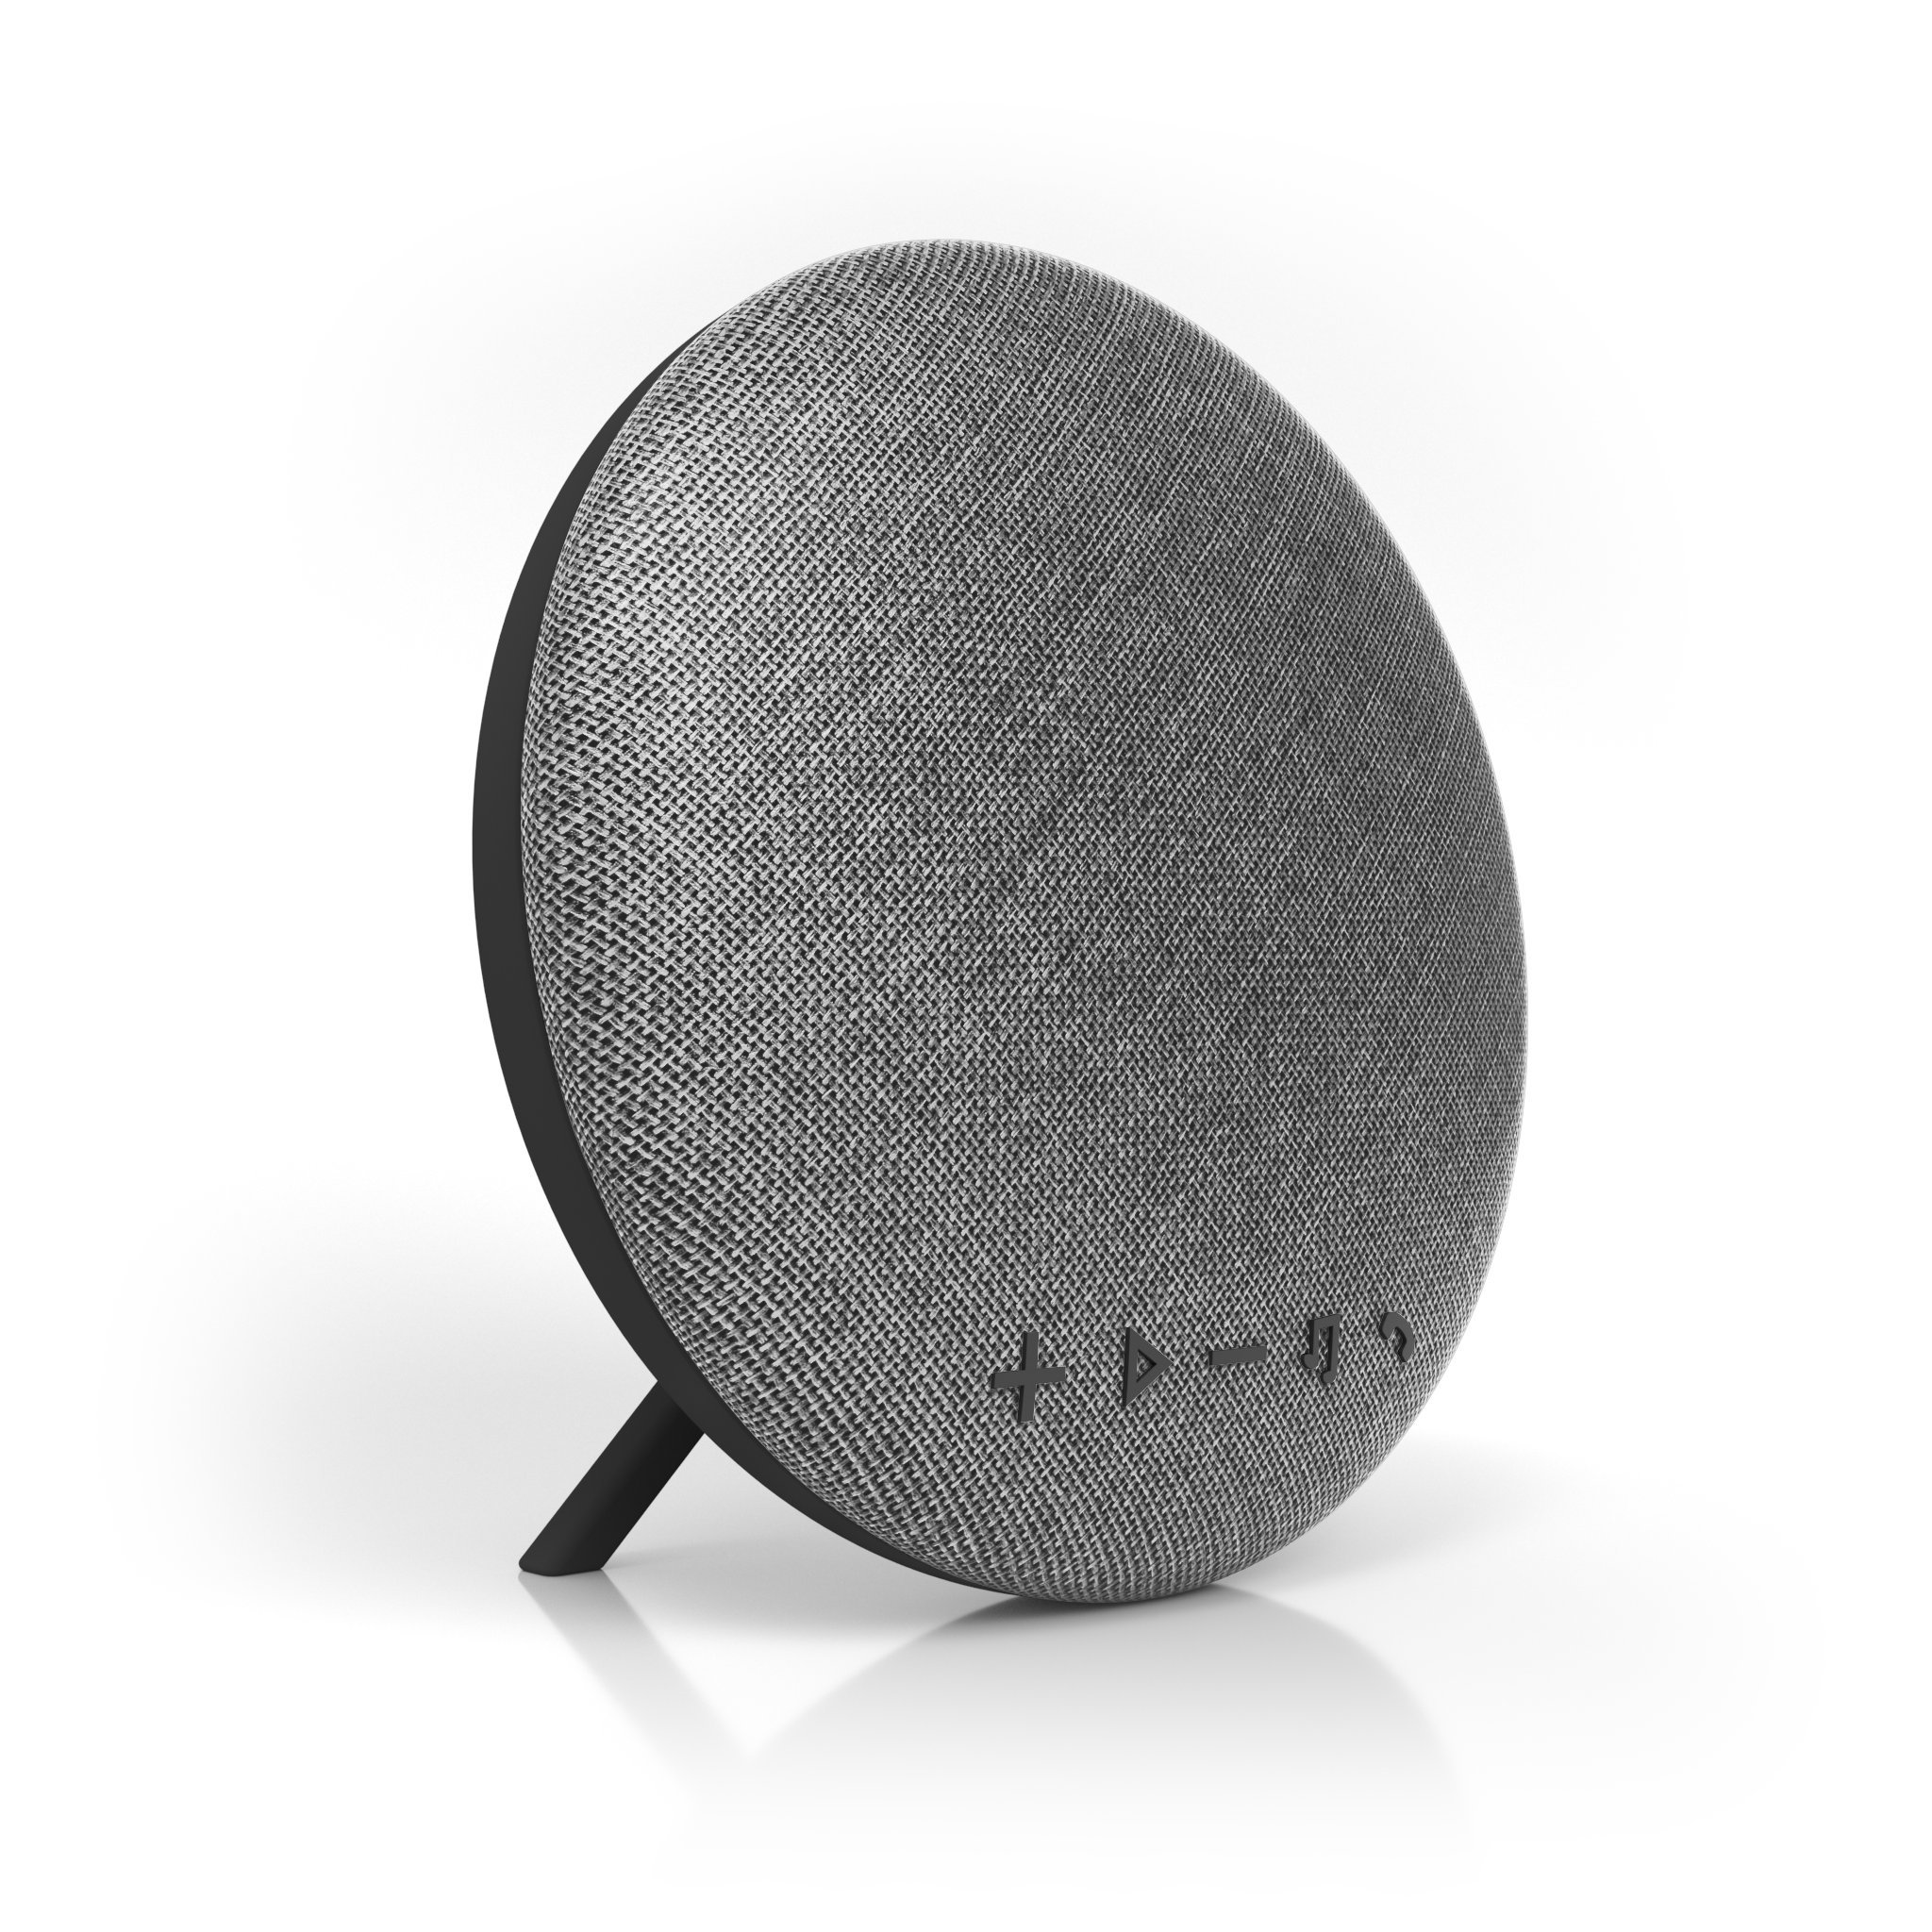 Deco Series Speaker by Tzumi - Large Wireless Bluetooth Fabric Speaker - Add Powerful Sound And Ambiance to Any Room - Grey by Tzumi